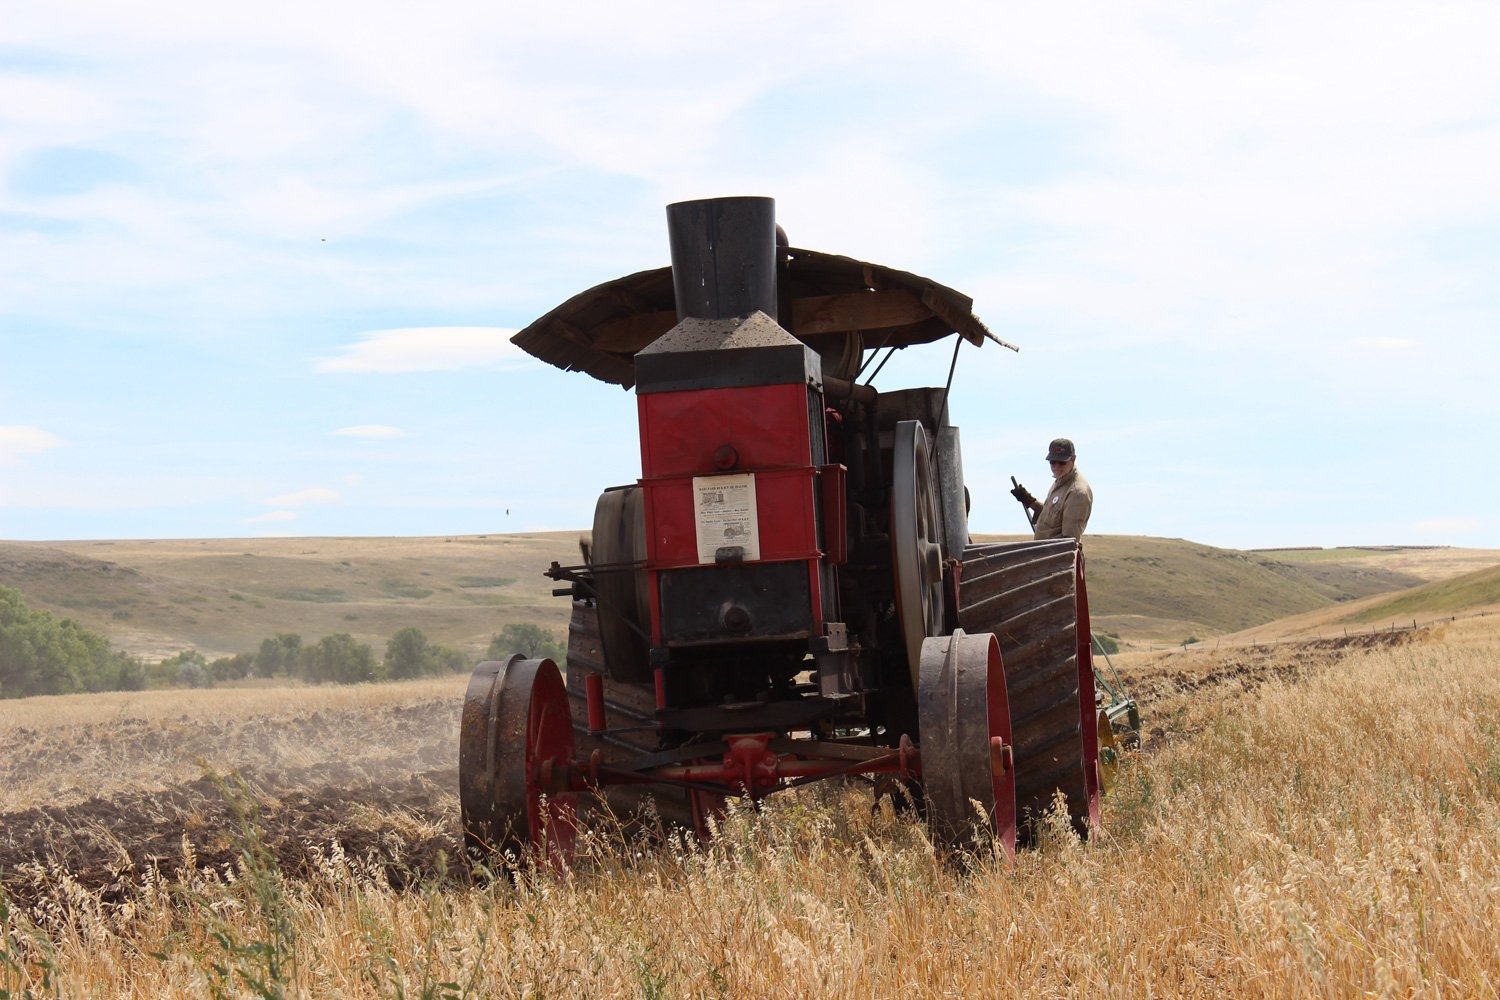 The Hart Parr 30-60 Old Reliable tractor, with its hit-and-miss firing away, made an unforgettable sound echoing off the nearby hillsides.  Photo Luke Steinberger